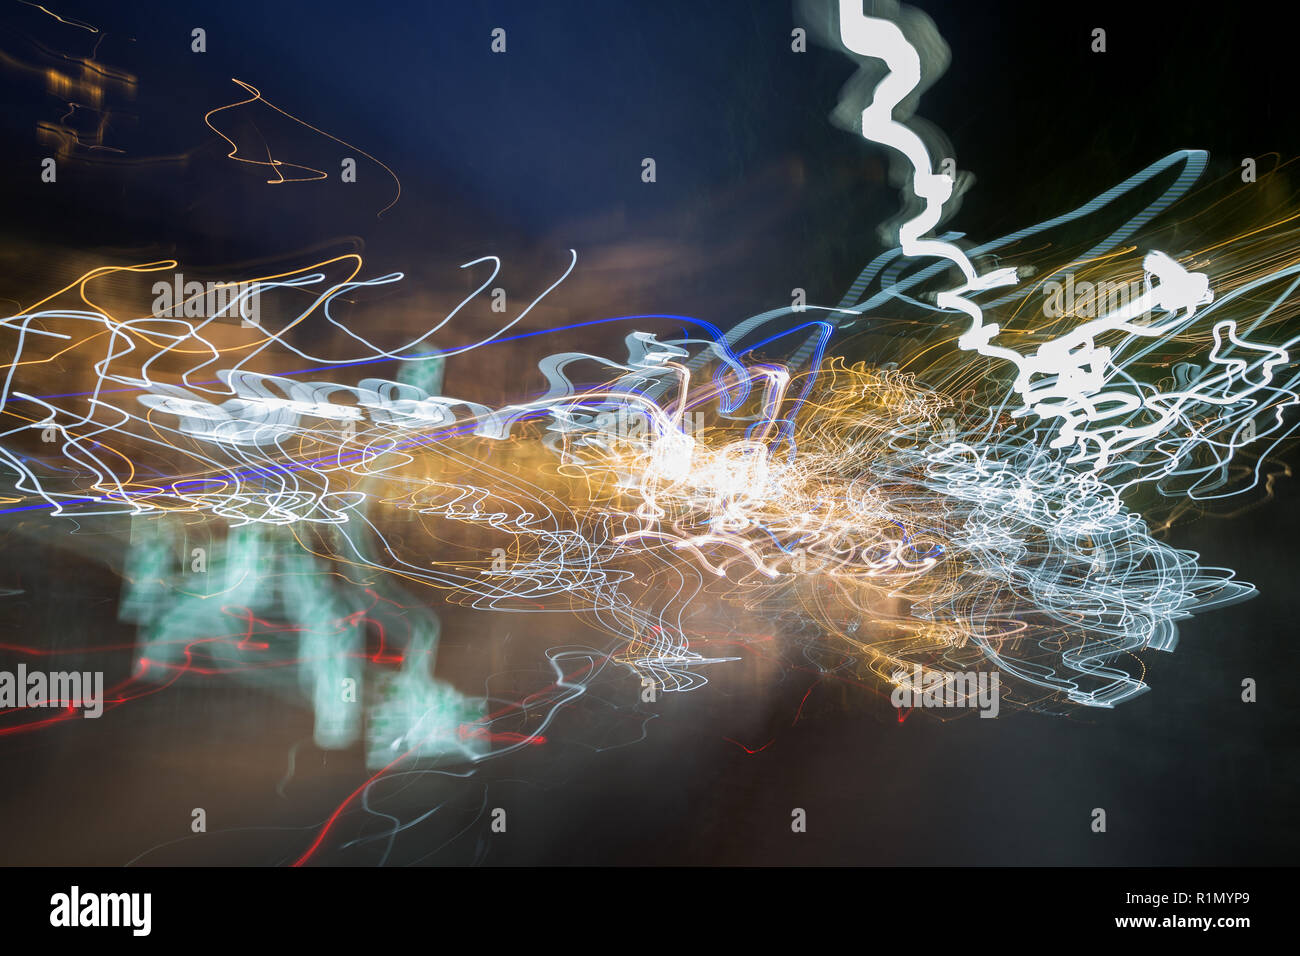 Abstract photo of motion and colorful light trails in a city at night. - Stock Image